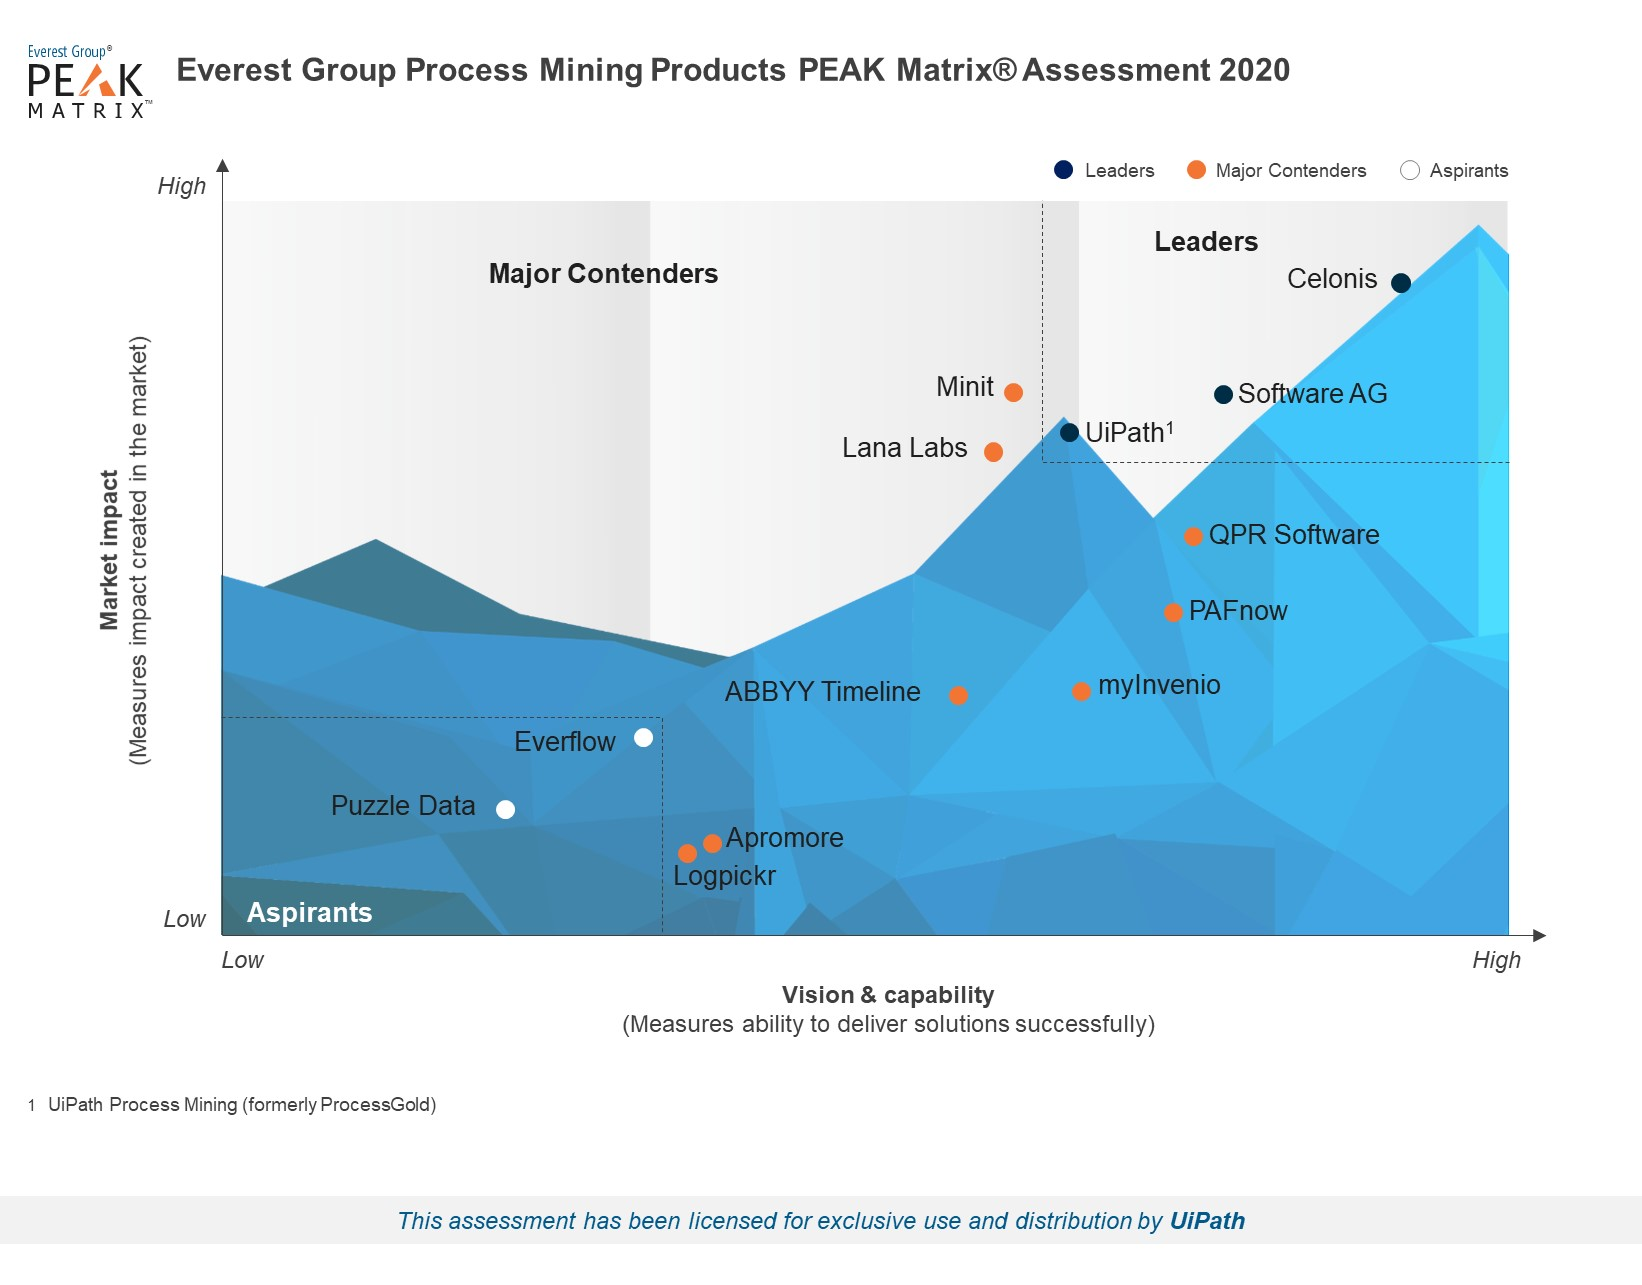 UiPath Process Mining Leader in Everest Process Mining Products PEAK Matrix Report for 2020